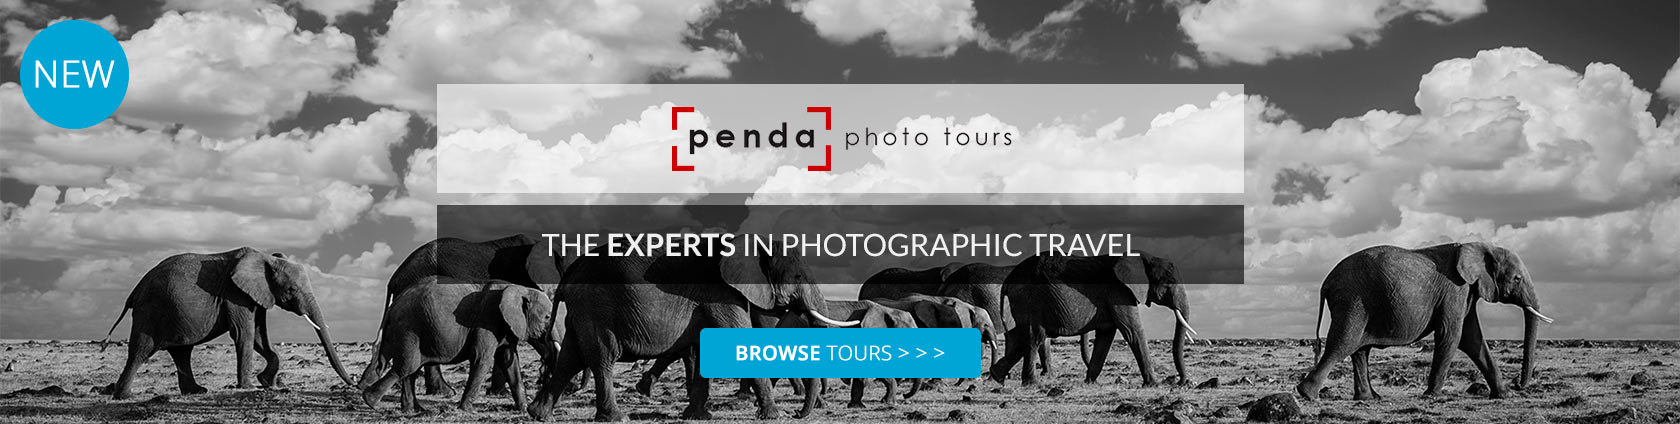 Penda Photo Tours